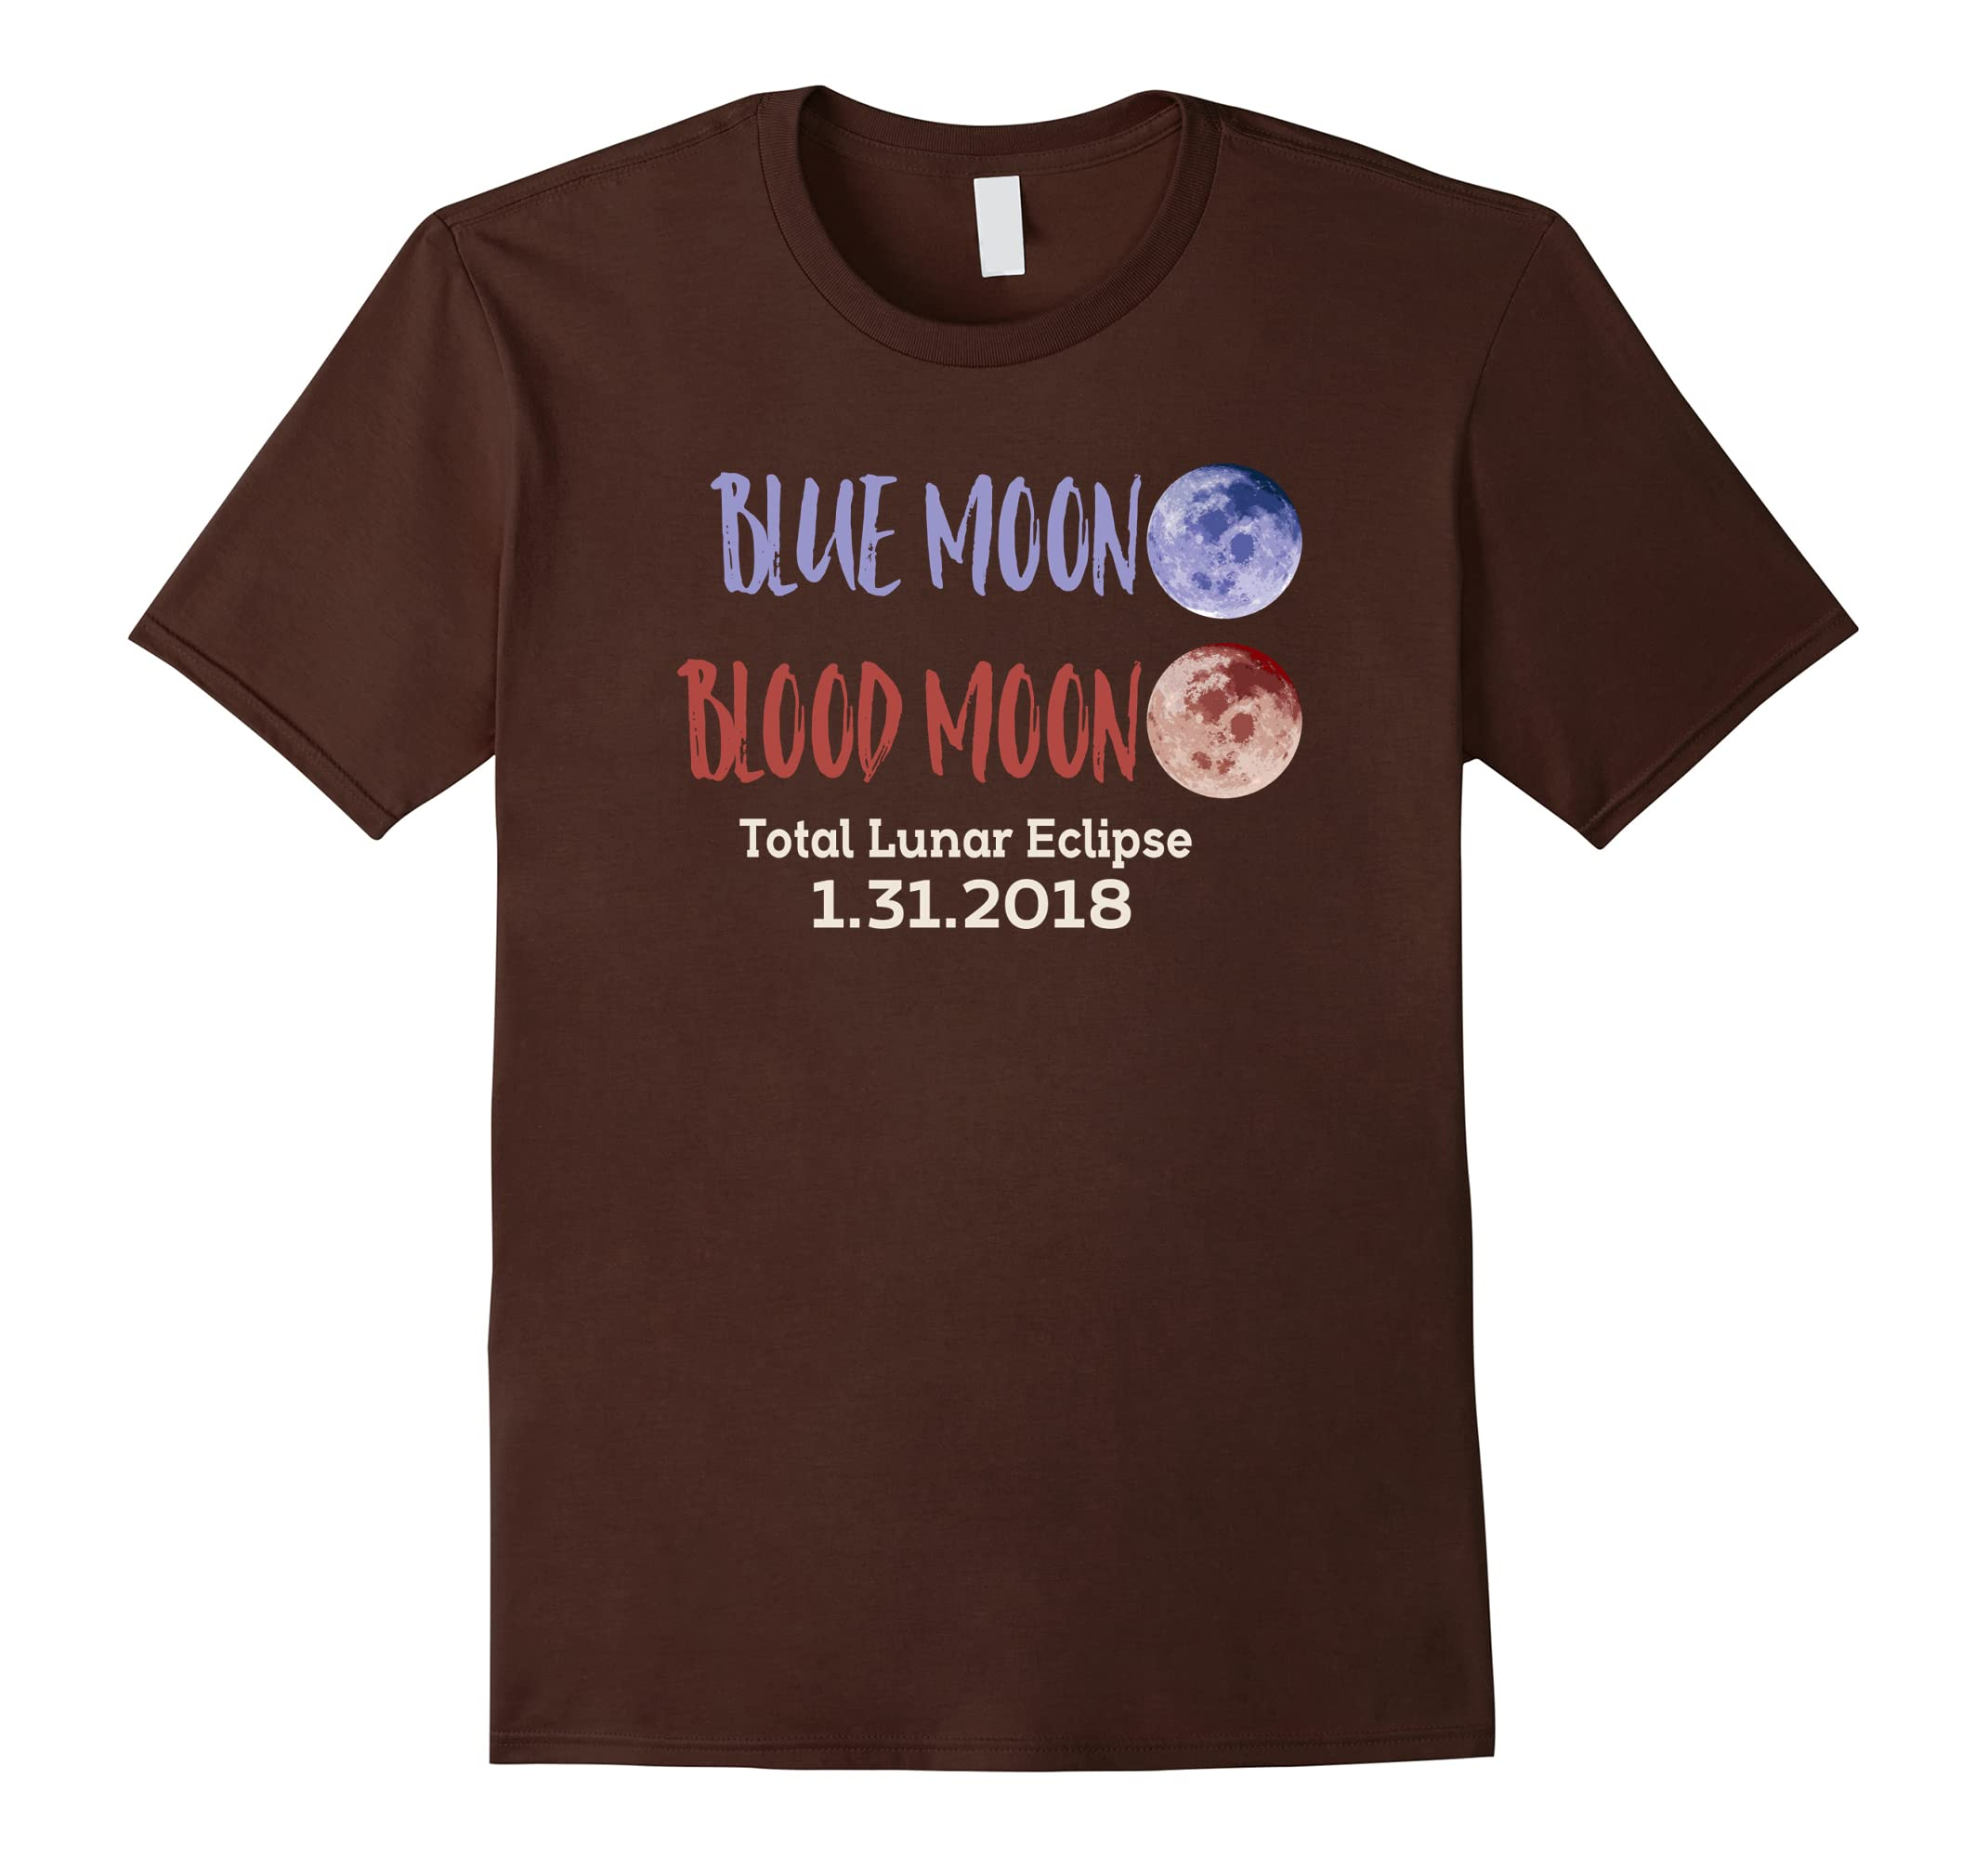 Lunar 2018 Eclipse T Full Shirt MoonBlood Blue Rt Moon hCBQrtsdx